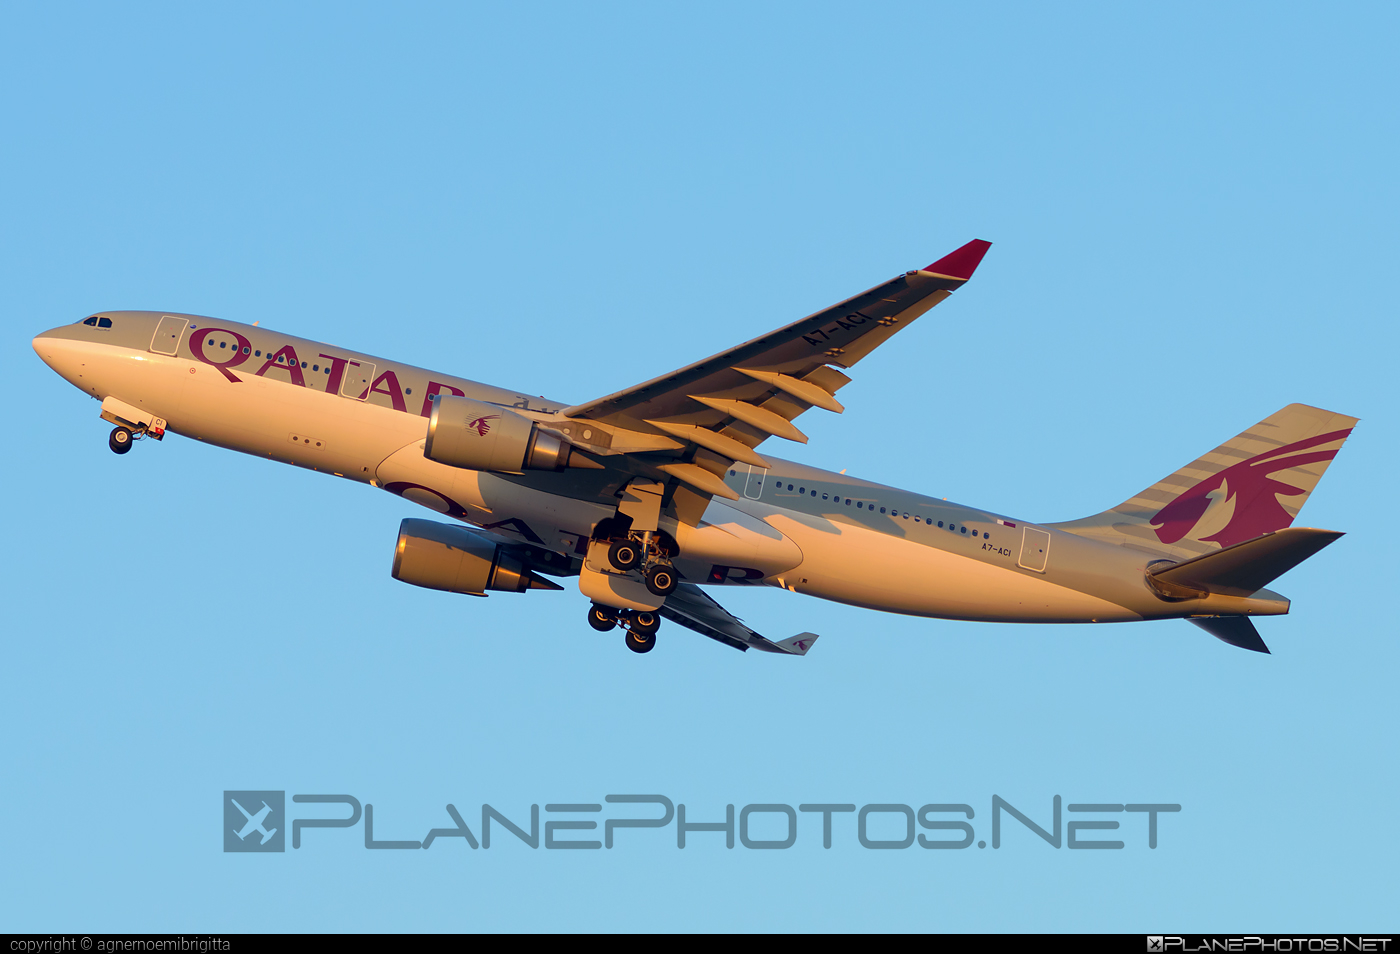 Qatar Airways Airbus A330-202 - A7-ACI #a330 #a330family #airbus #airbus330 #qatarairways